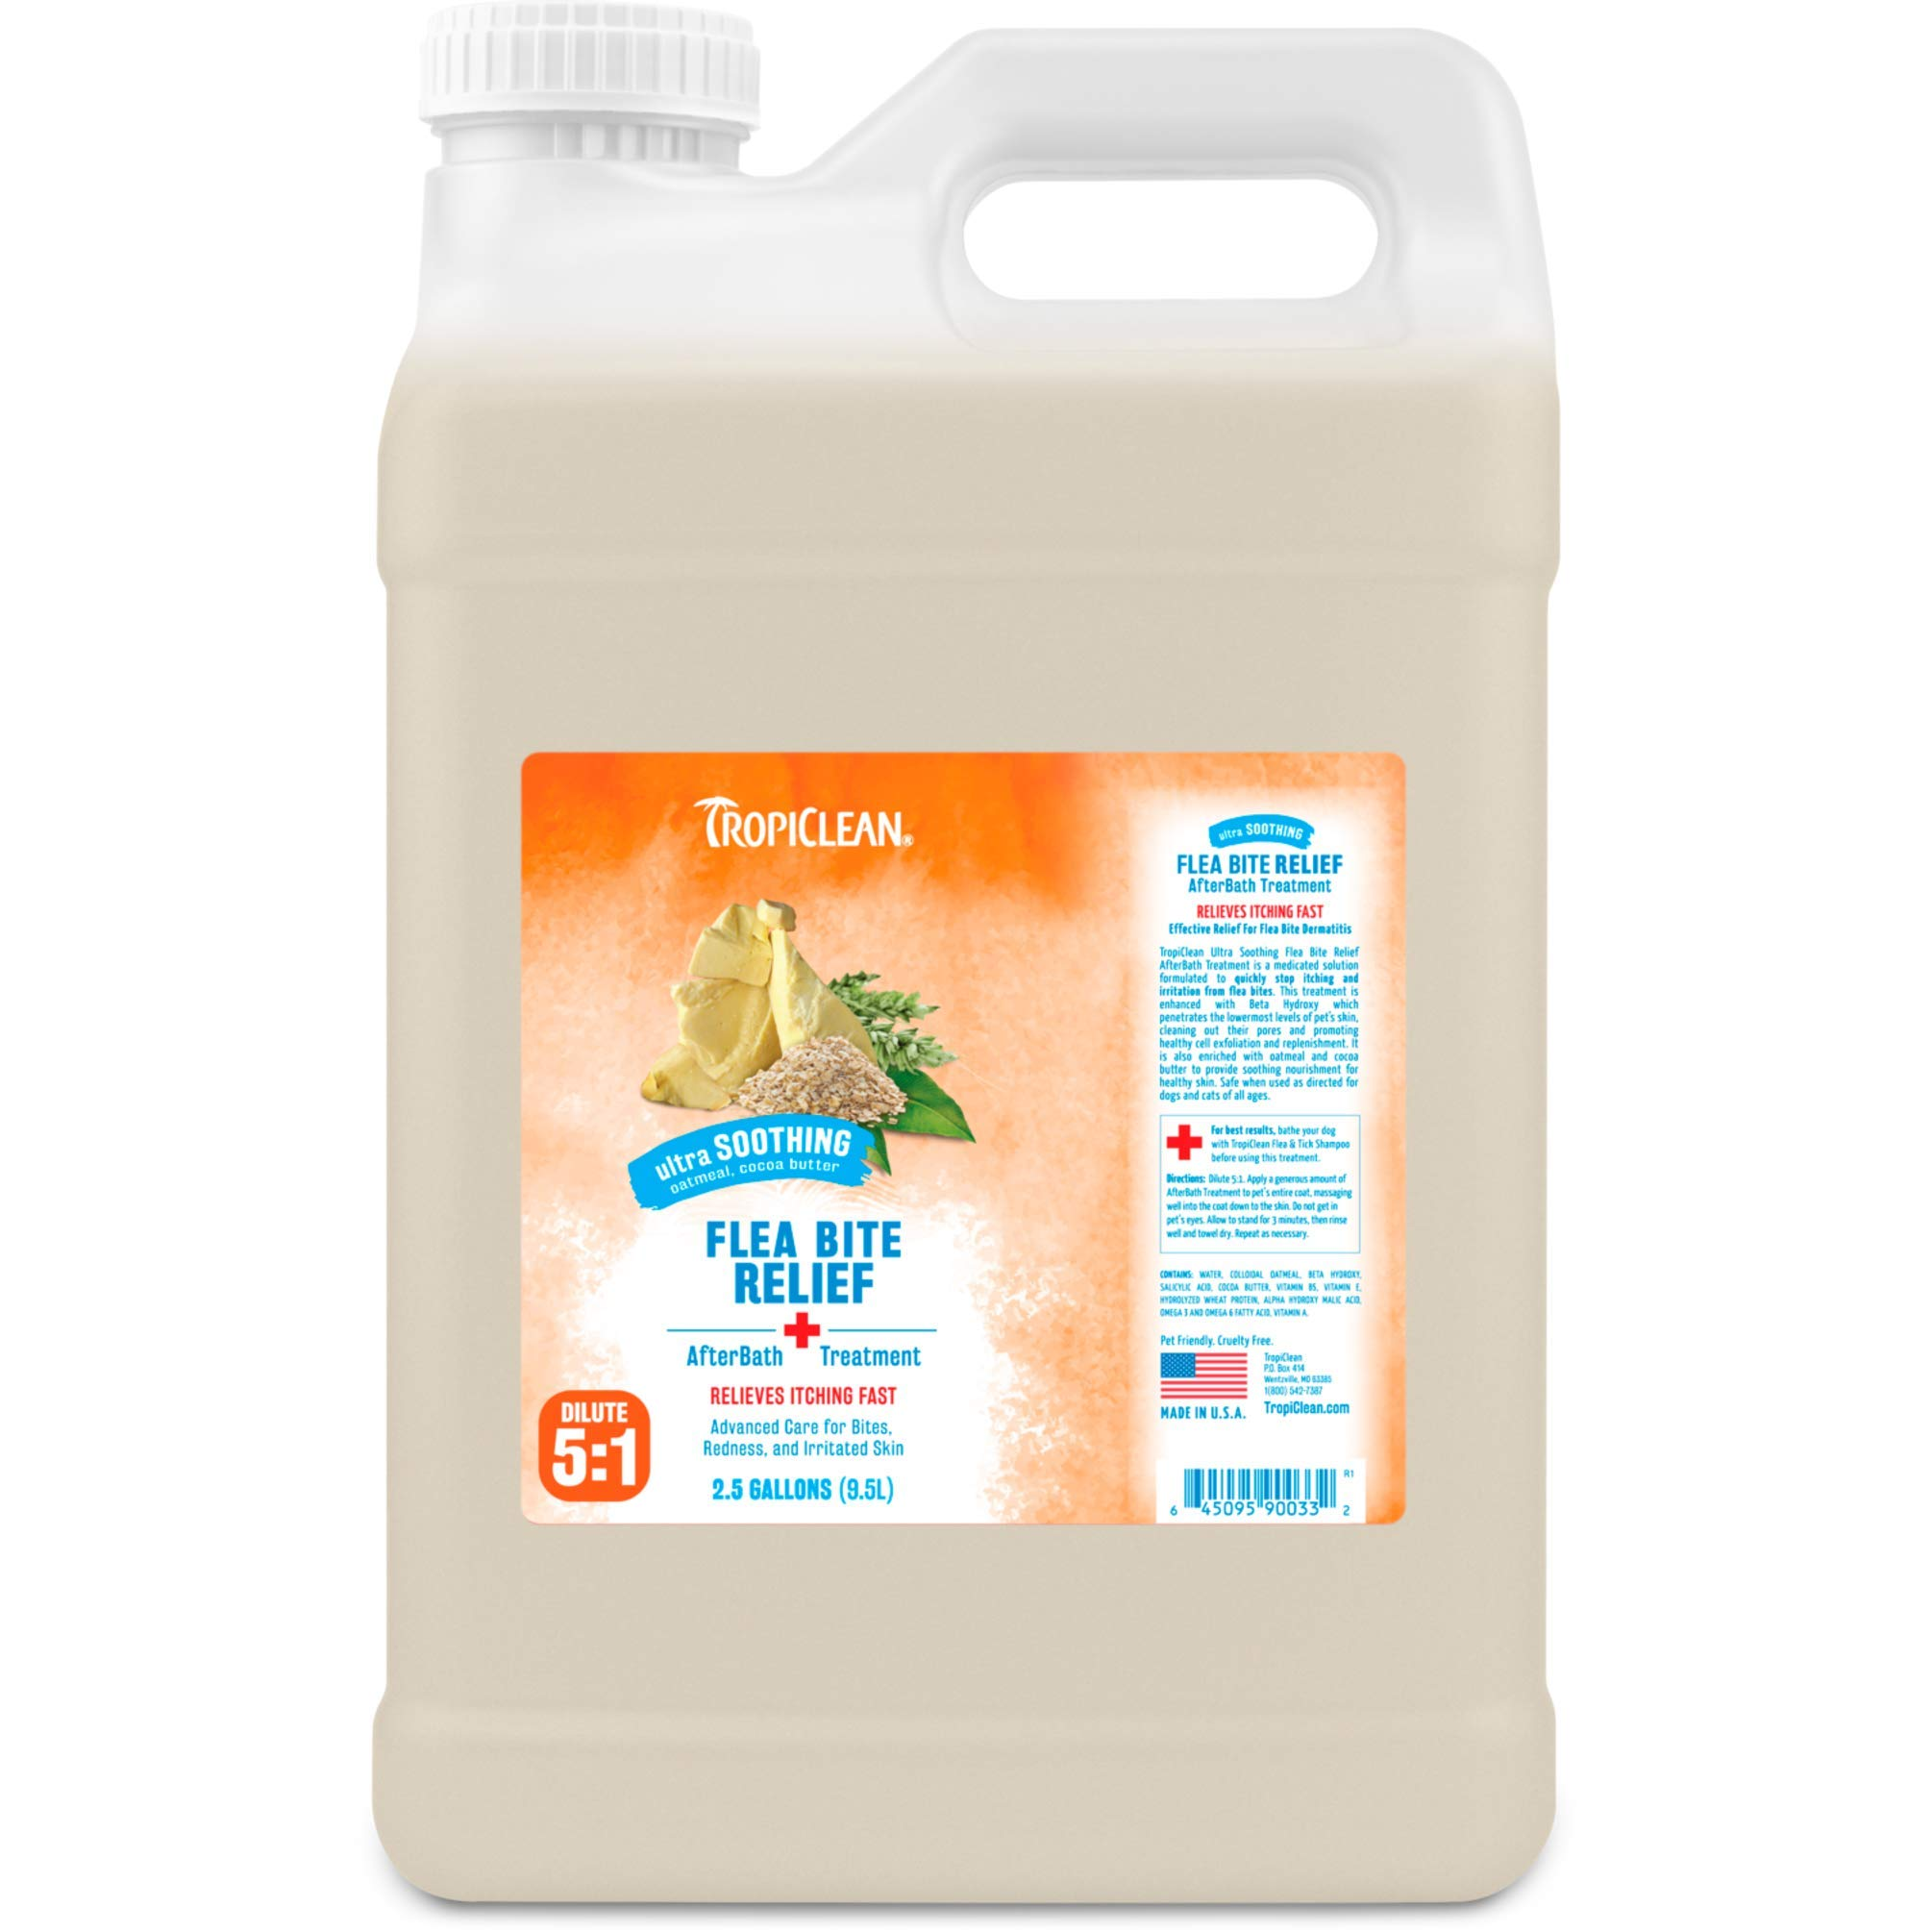 TropiClean Flea and Tick Bite Relief After Bath Treatment for Pets, 2.5 gal, Made in USA by TropiClean